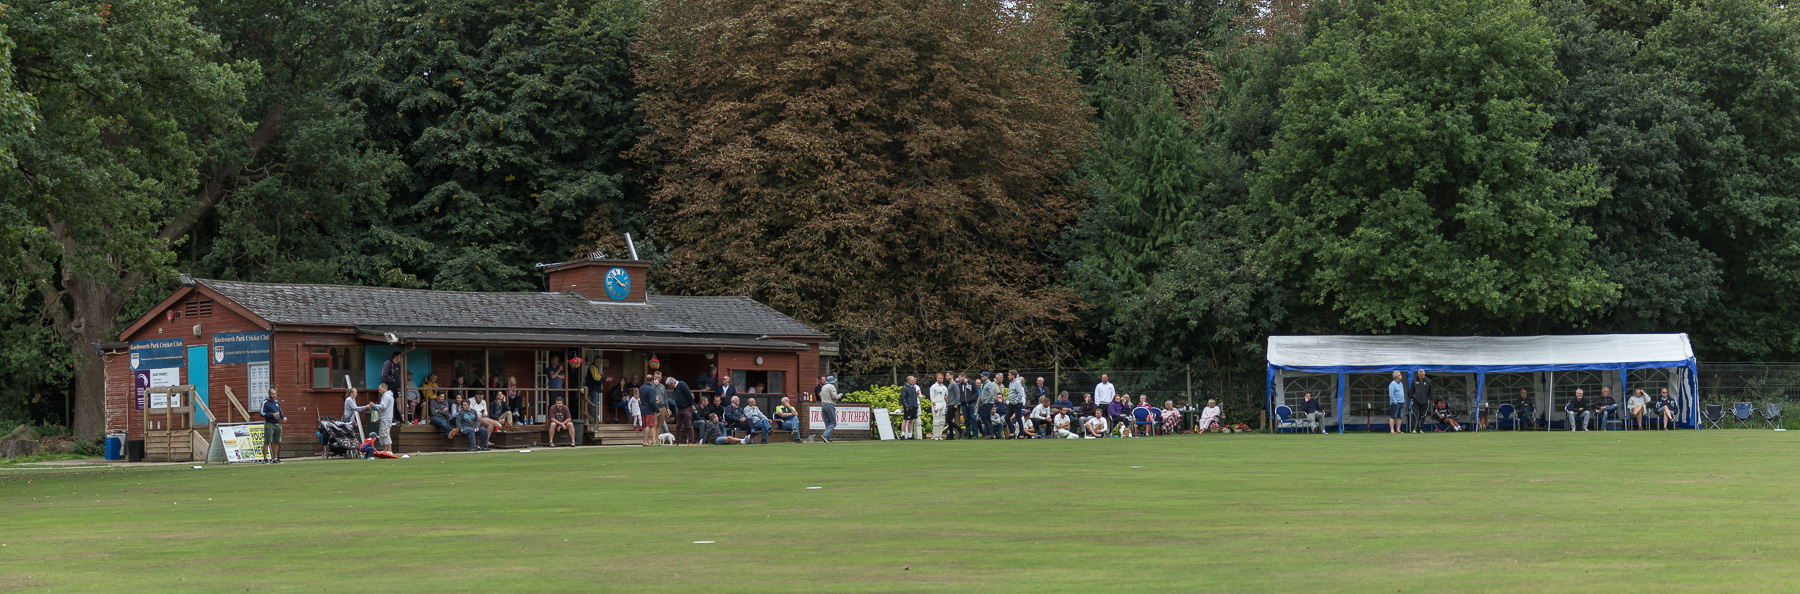 Herts Cup Final-54